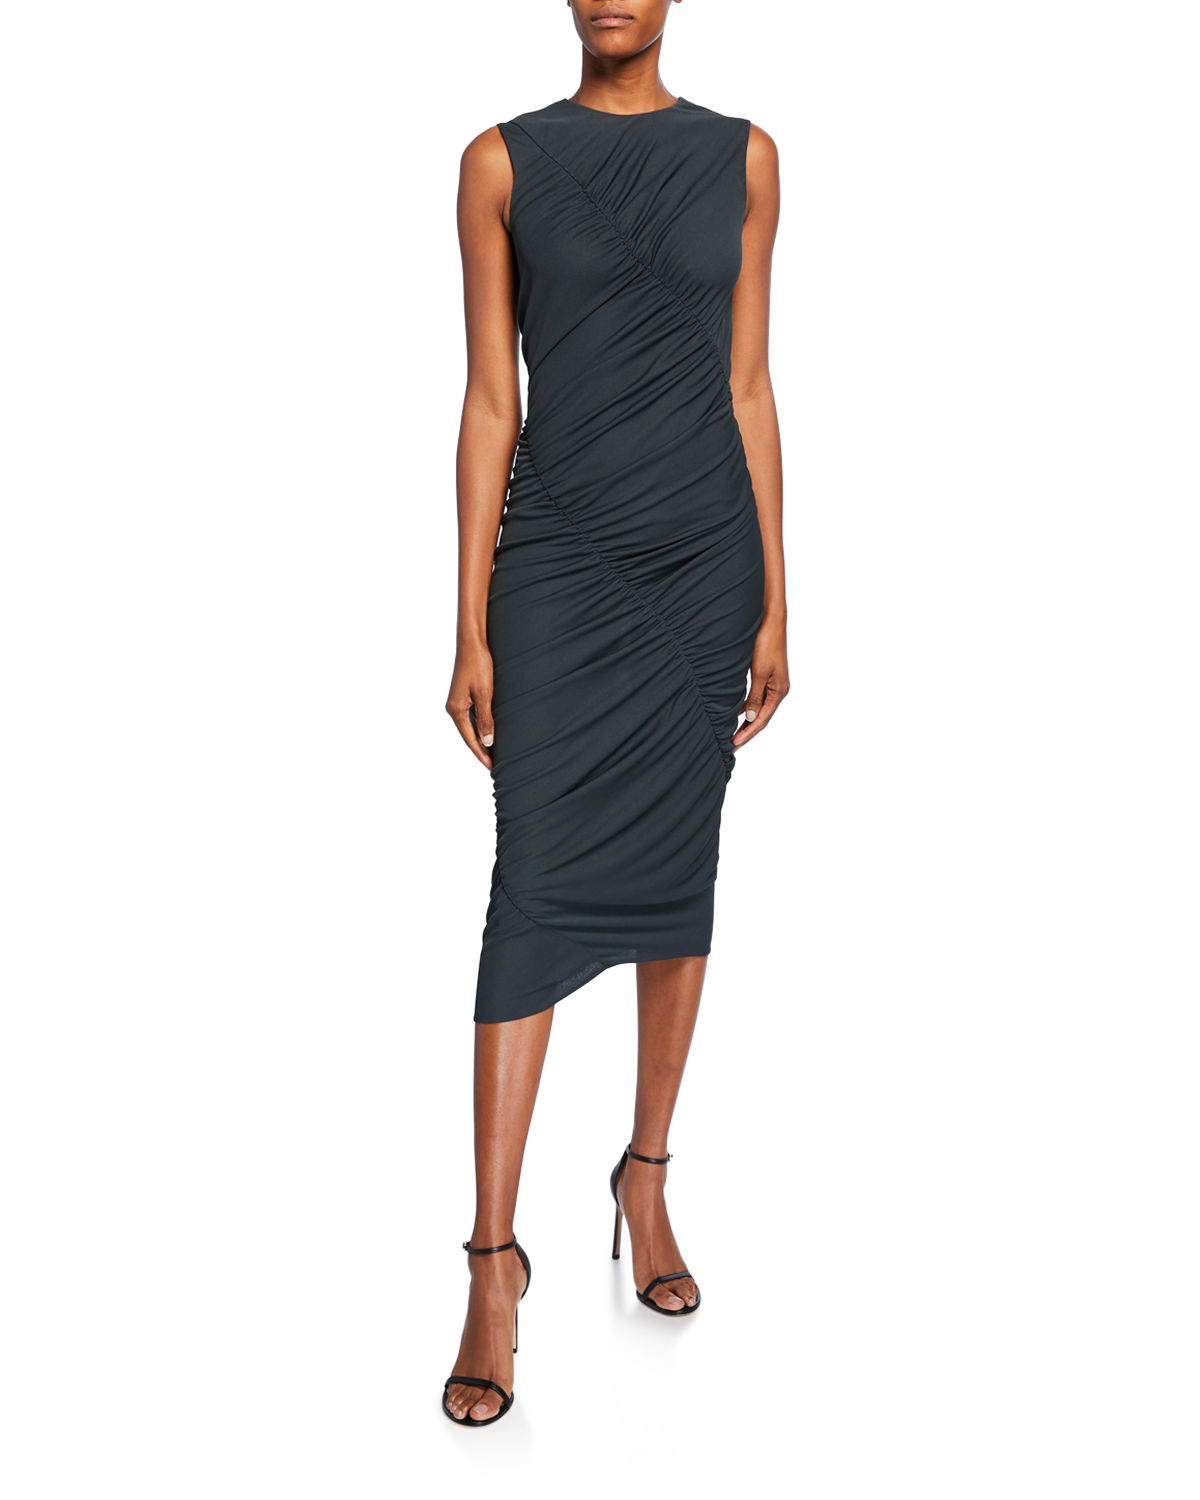 Narciso Rodriguez Dresses RUCHED JERSEY ASYMMETRIC DRESS